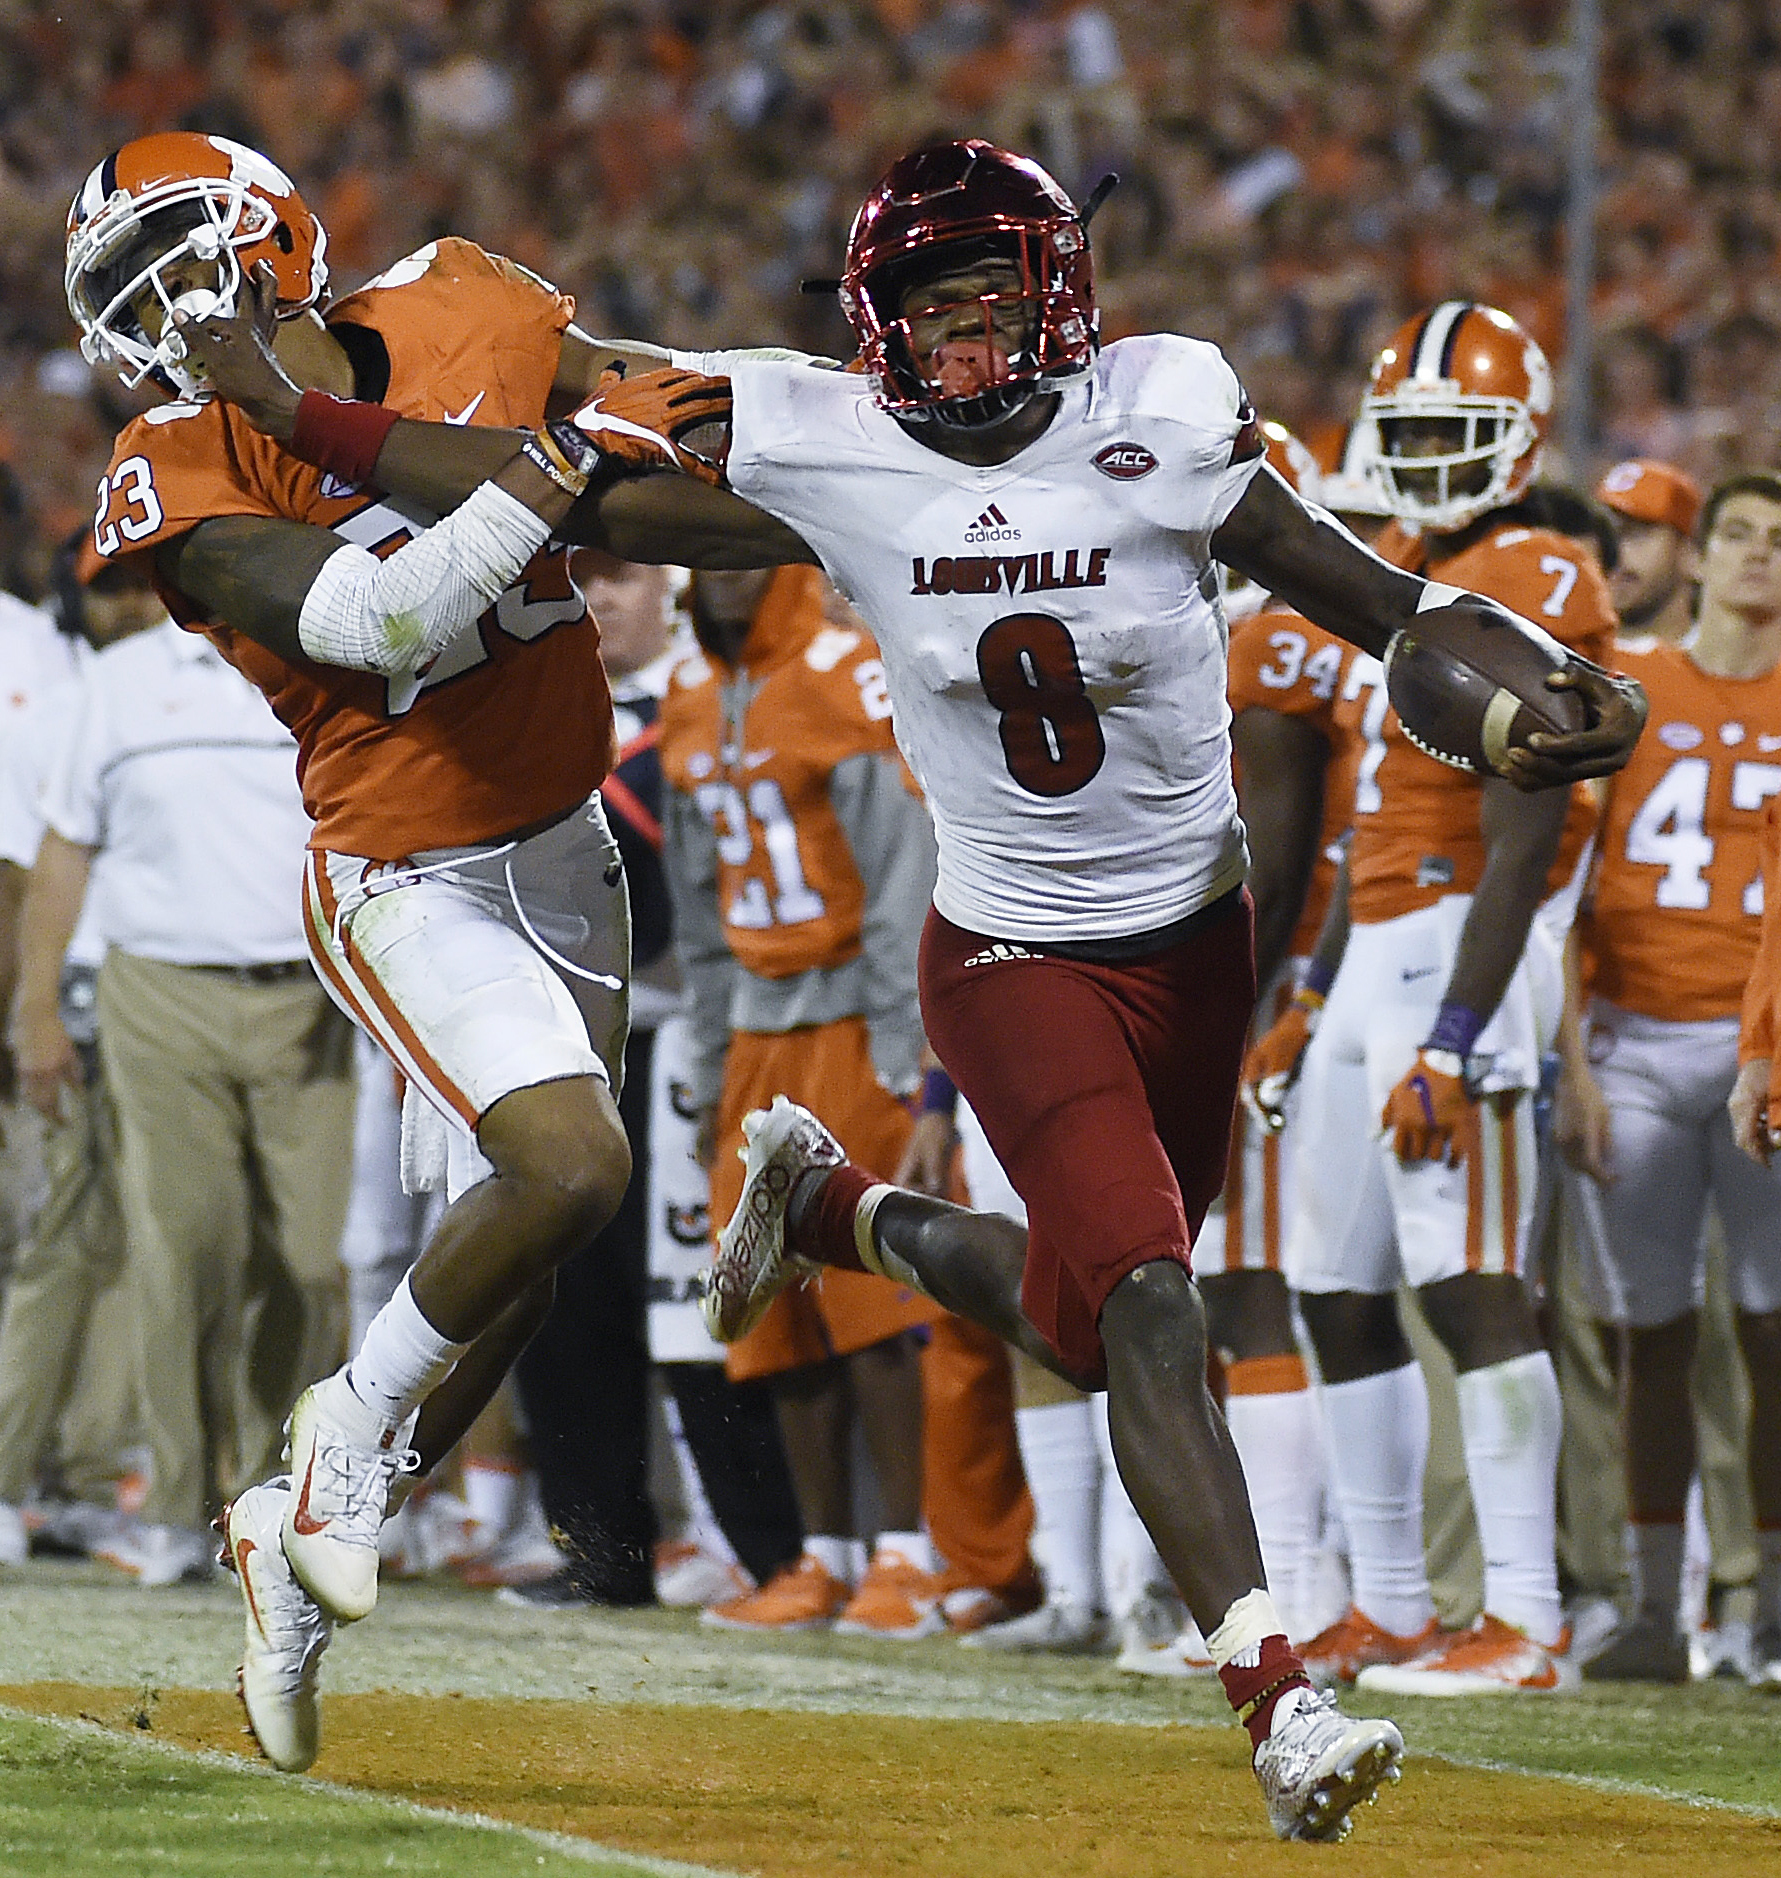 FILE - In this Oct. 1, 2016, file photo, Louisville quarterback Lamar Jackson (8) stiff-arms Clemson safety Van Smith (23) as he goes out of bounds during the second half of an NCAA college football game in Clemson, S.C.  With enough games played to have